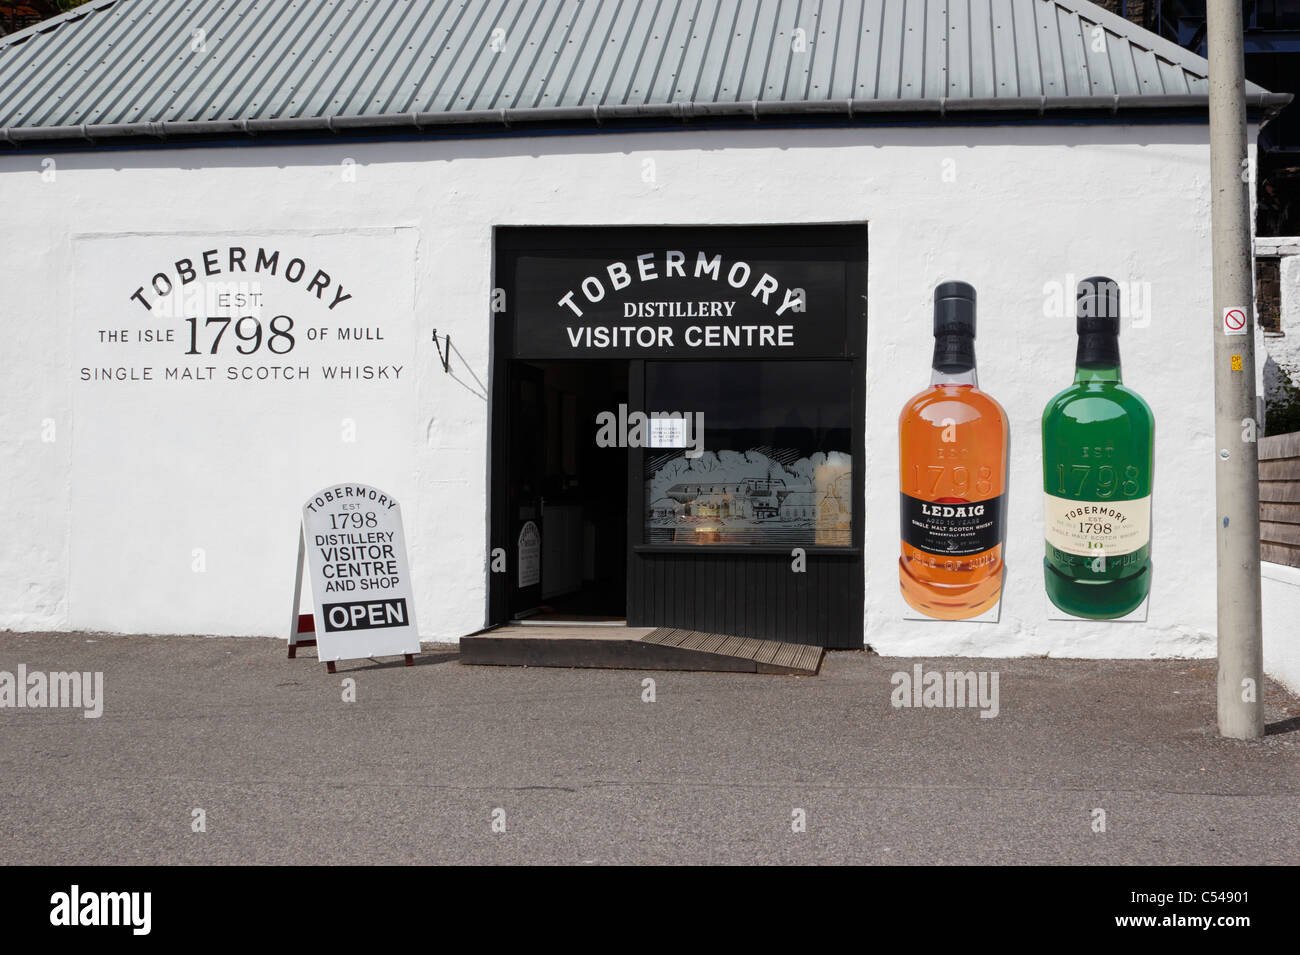 The Tobermory distillery visitor centre on the Isle of Mull - Stock Image